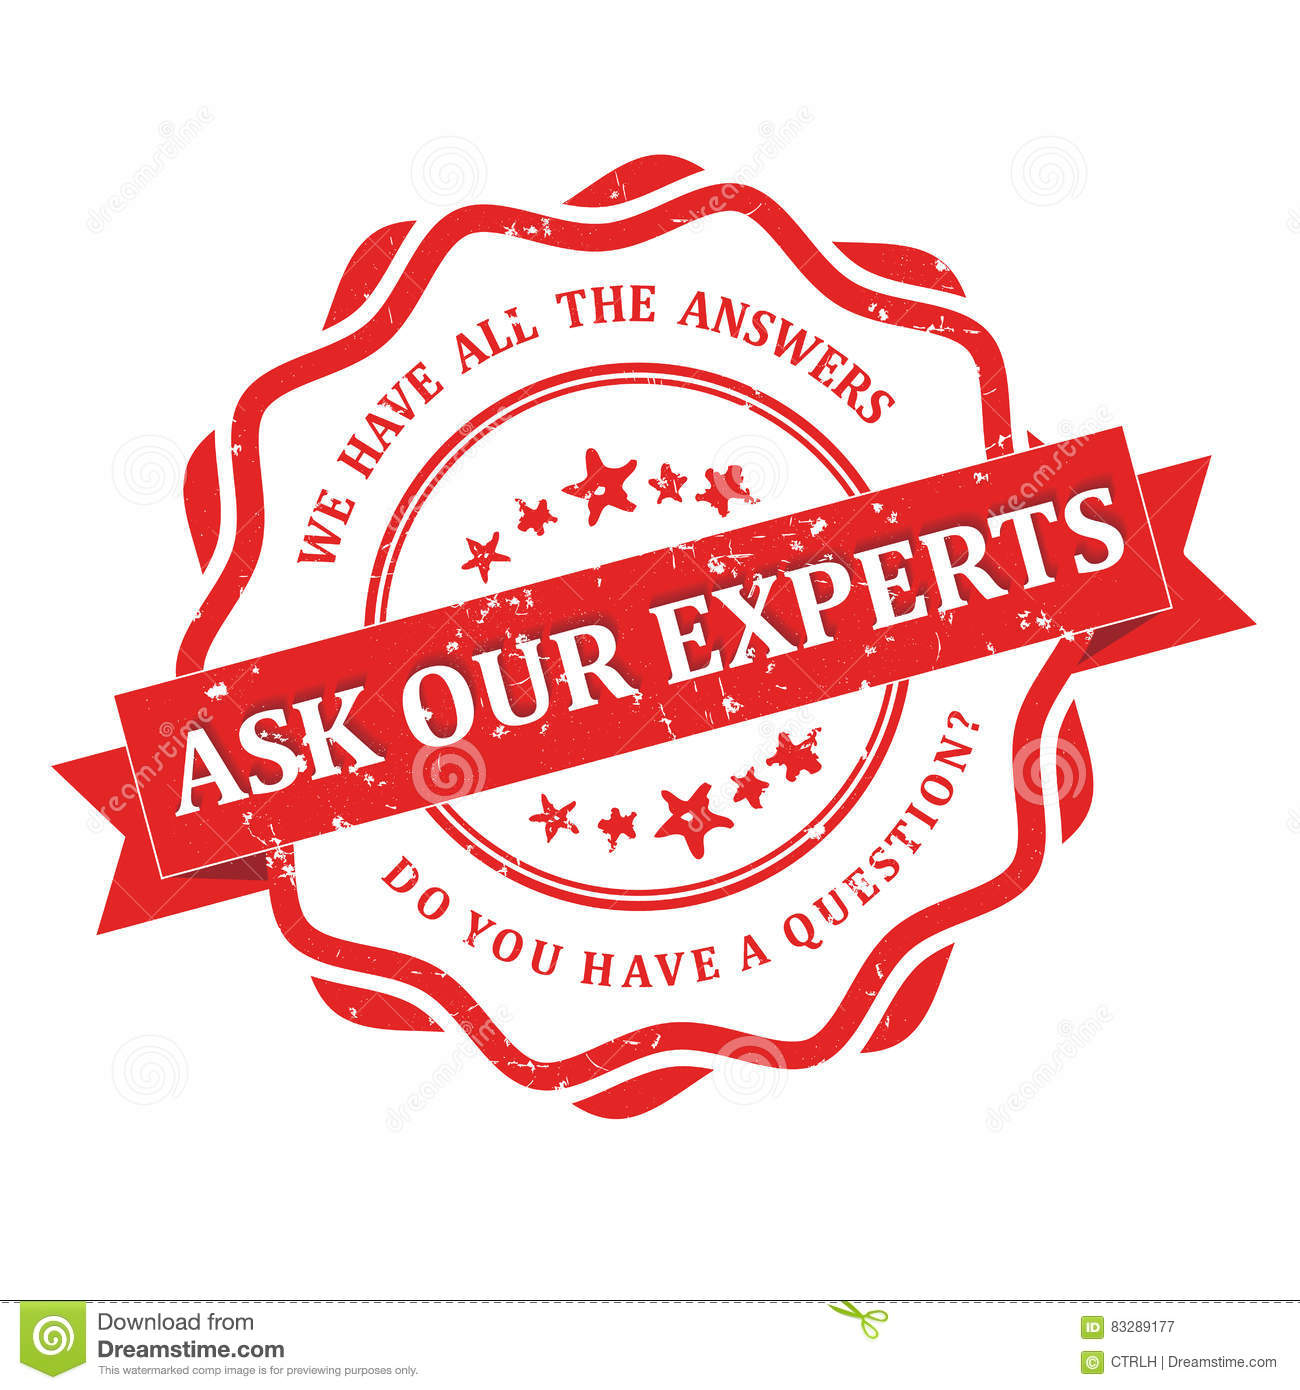 Ask our experts - grunge stamp.